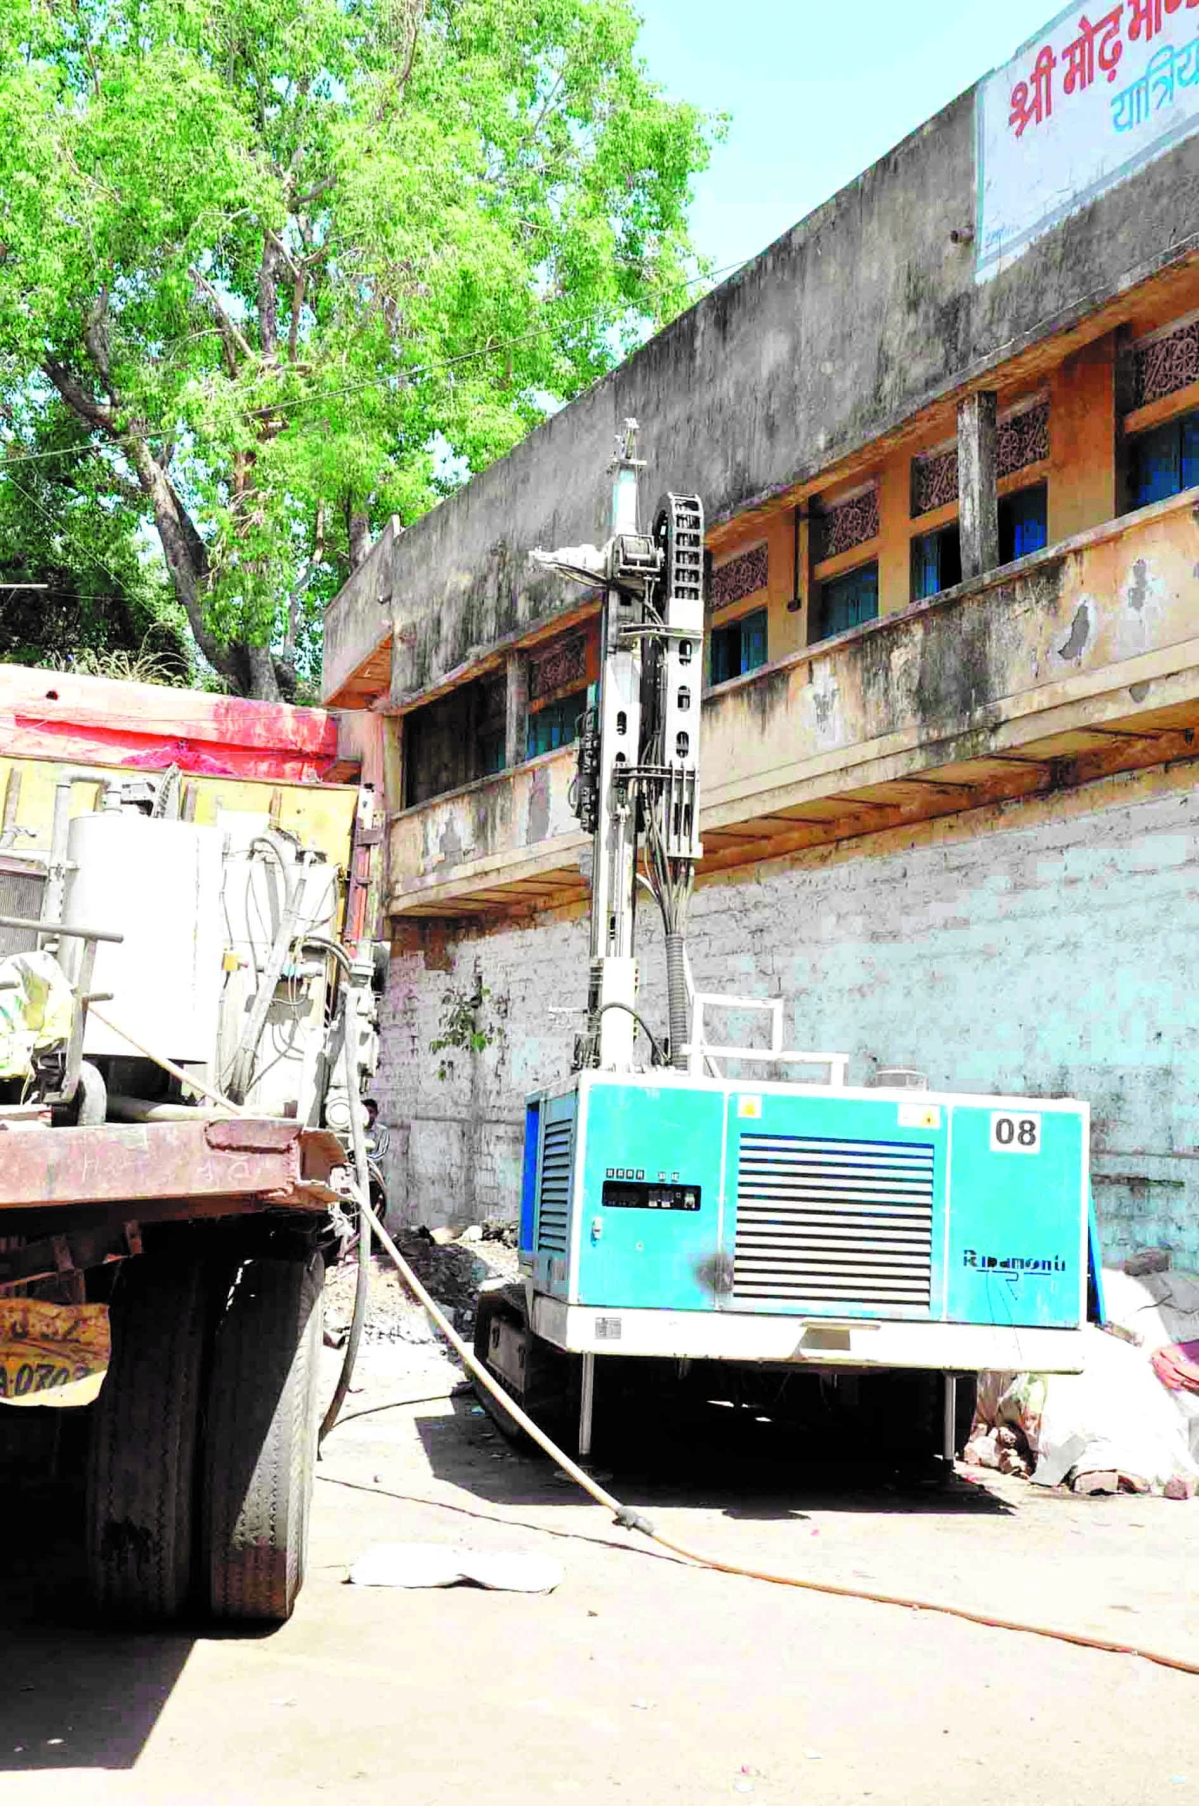 Protest against installation of mobile towers escalates